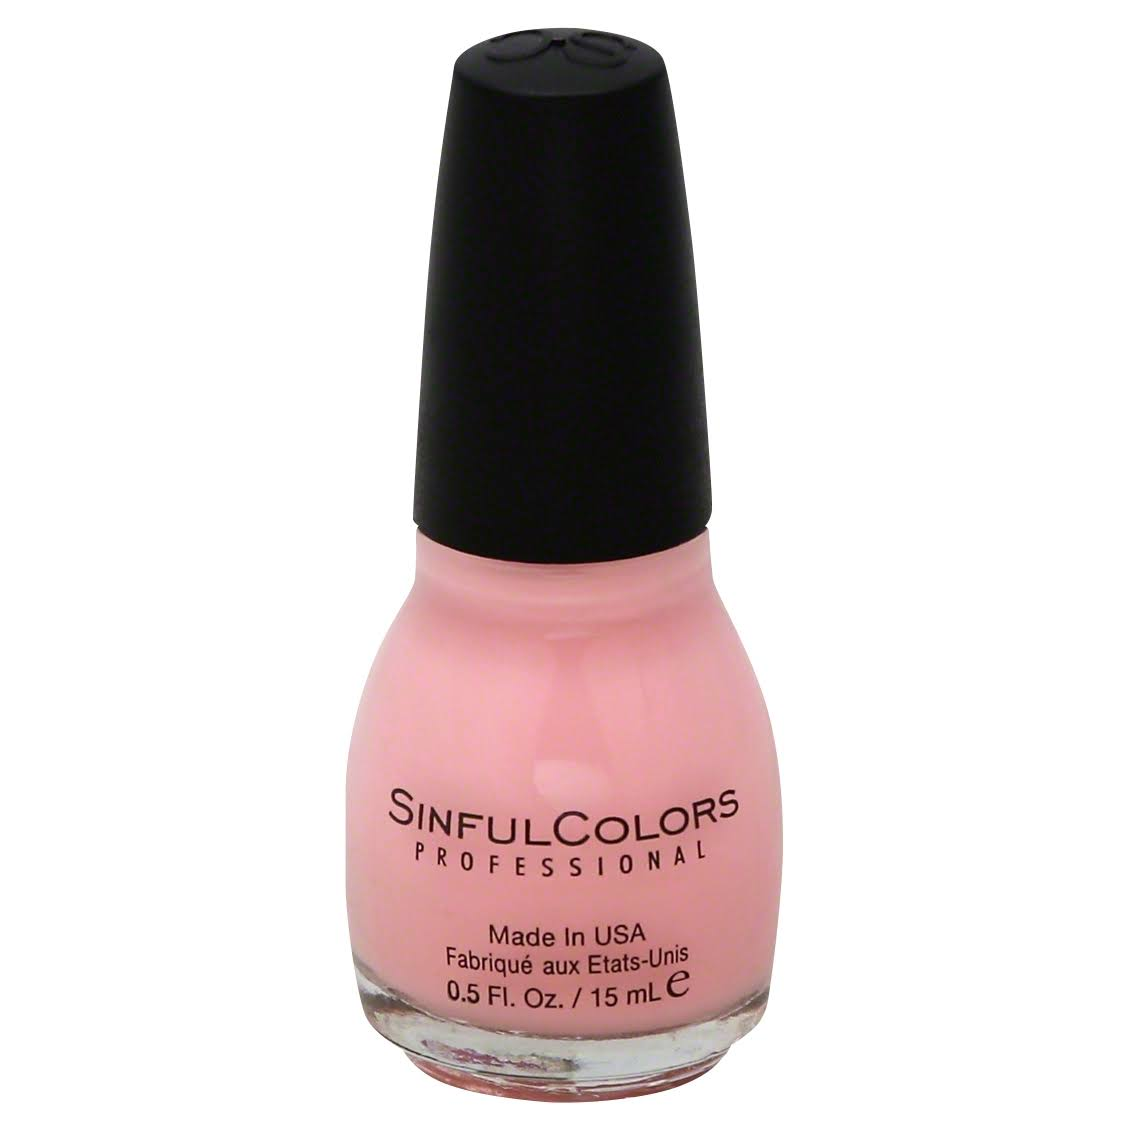 Sinful Colors Professional Nail Polish - #1506 Pink Smart, 0.5oz